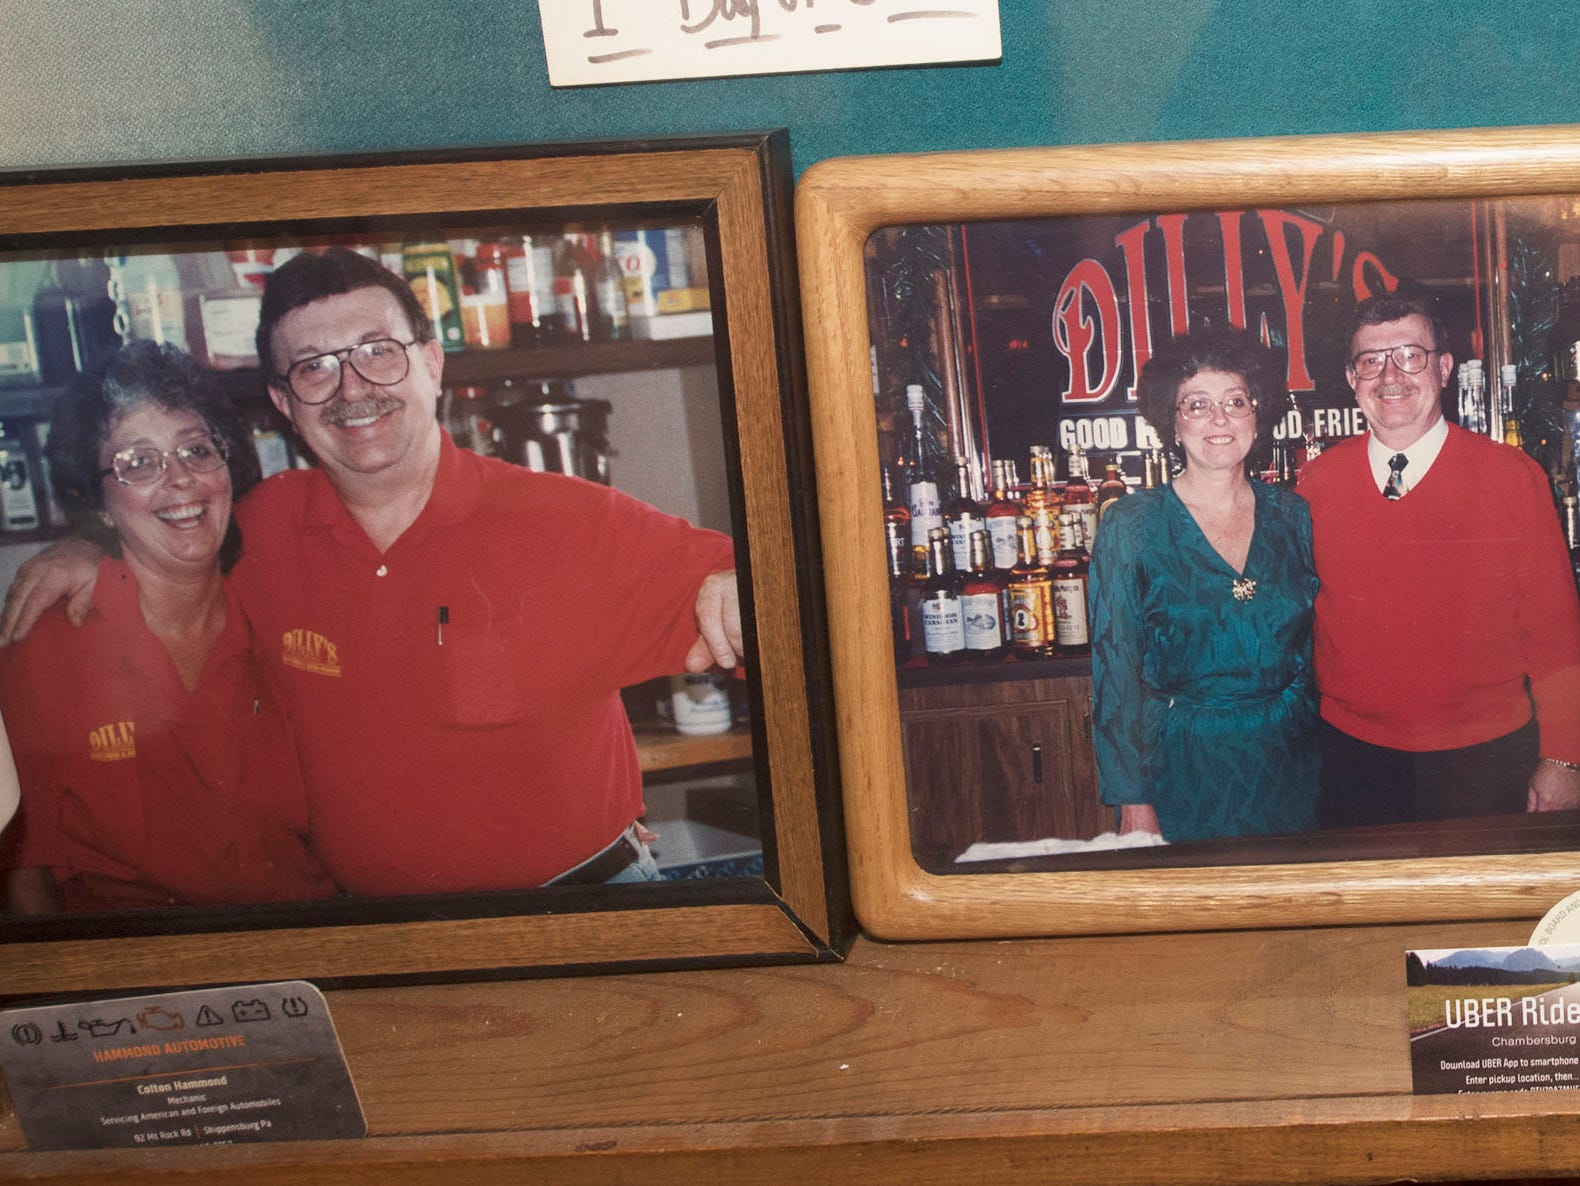 Photos show Del Mills and Sandy Mowen at the restaurant. Health problems experienced by Dilly's owners Del Mills and Sandy Mowen were cited as a reason they are closing the Chambersburg restaurant.